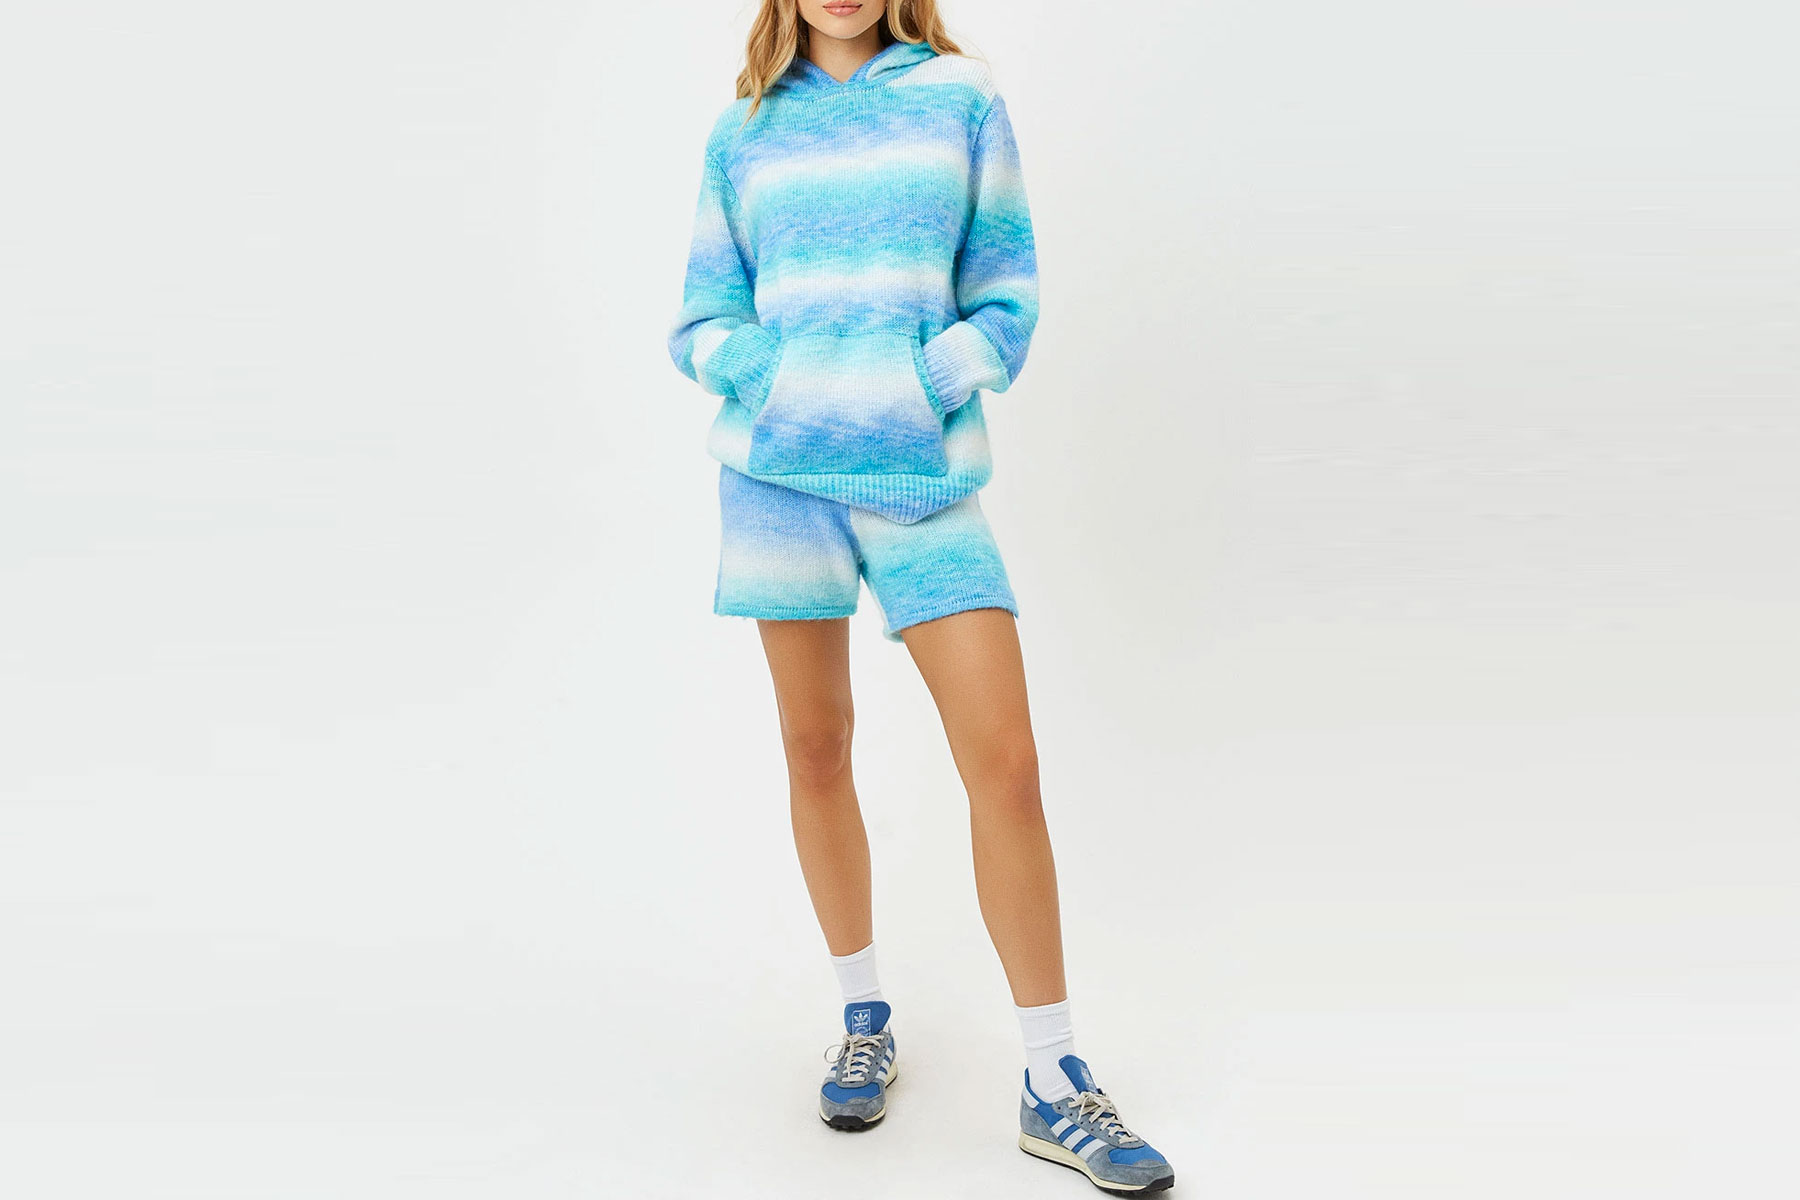 Blue ombre sweatshirt and sweat shorts